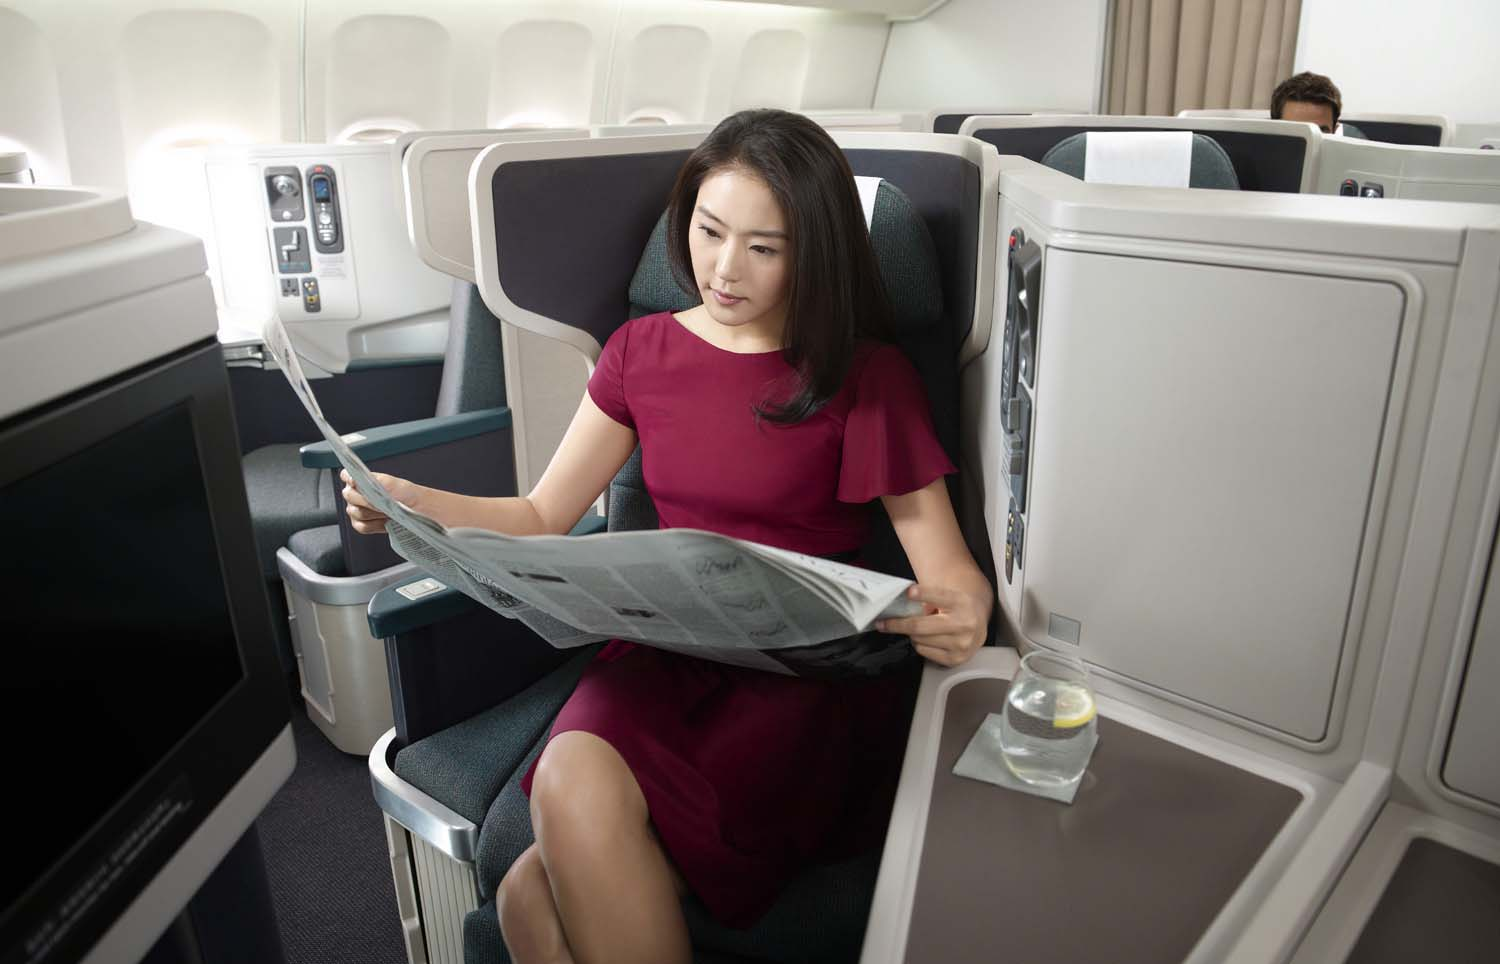 Cathay's first-generation Cirrus seat is still a landmark of passenger experience. Image: Cathay Pacific